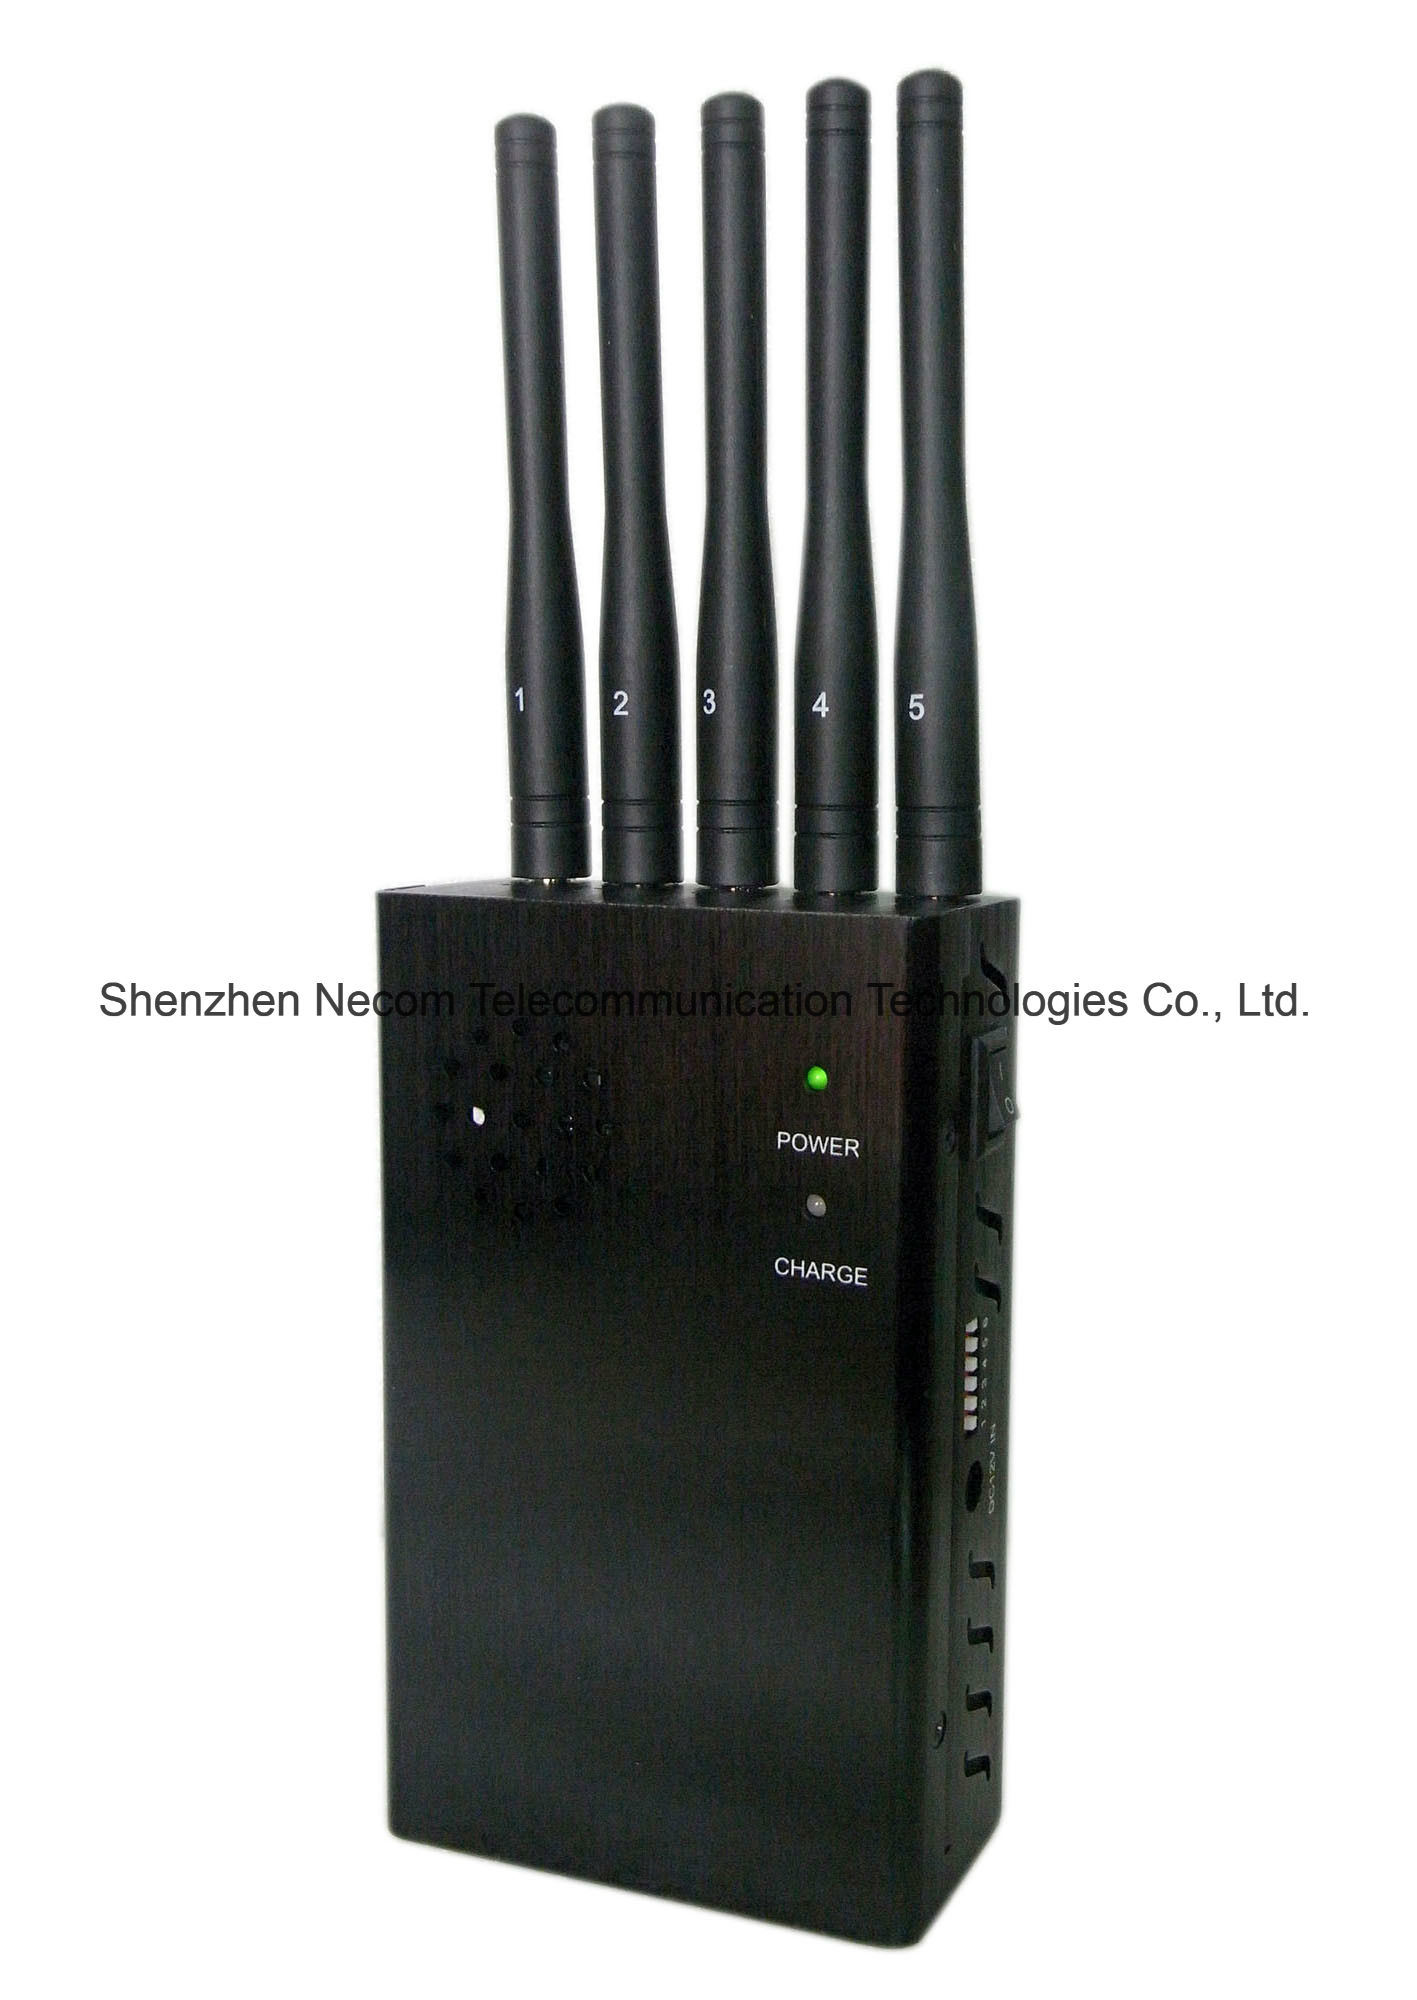 jammerjab kirby whitten tulsa - China 5 Antenna Big Portable Cell Jammer, Portable GPS Jammer, Portable WiFi Jammer, Jamming 2g+3G+4G+Gpsl1 - China 5 Band Signal Blockers, Five Antennas Jammers